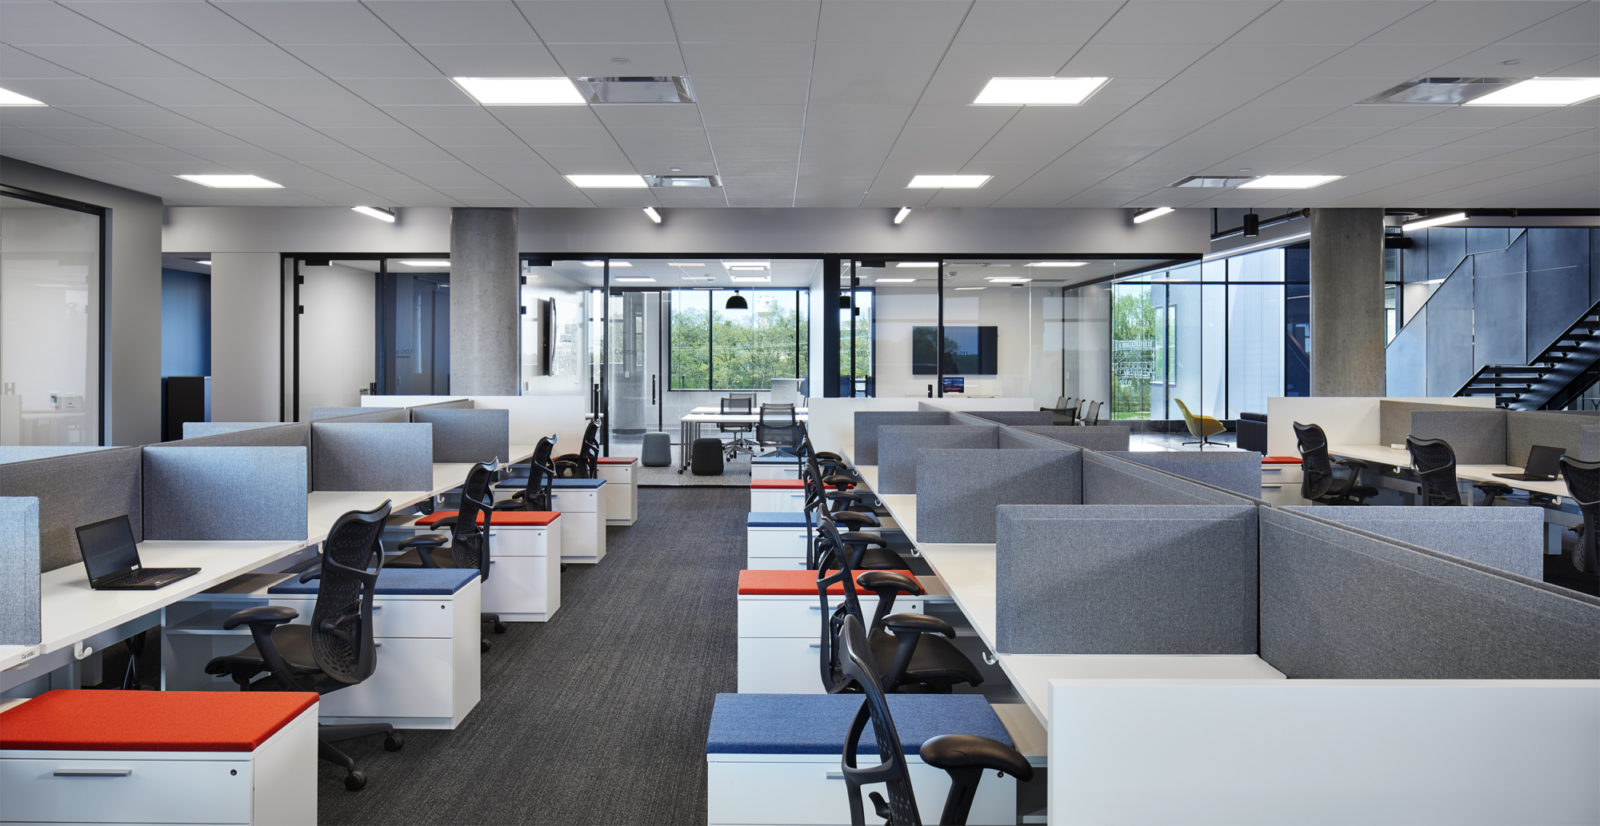 Office space with multiple cubicles